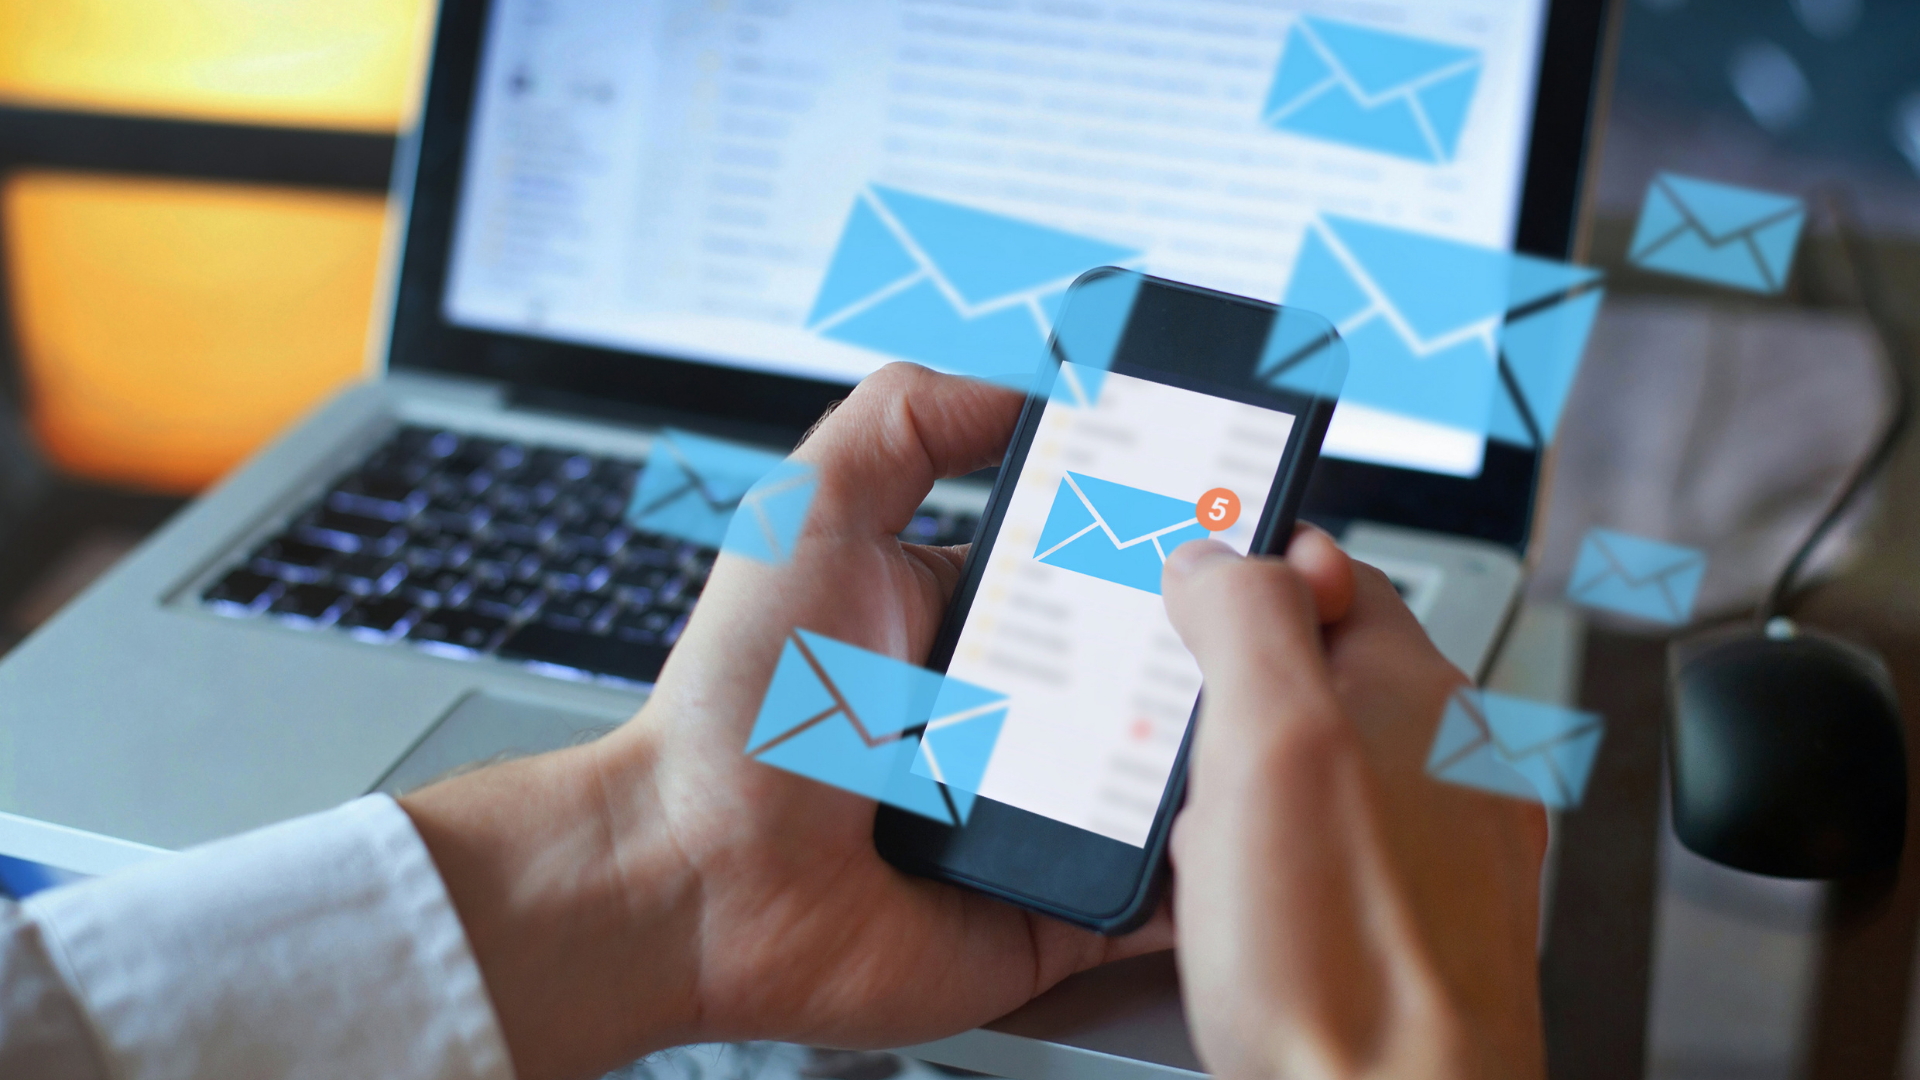 person receiving an email on phone - showing good email hygiene